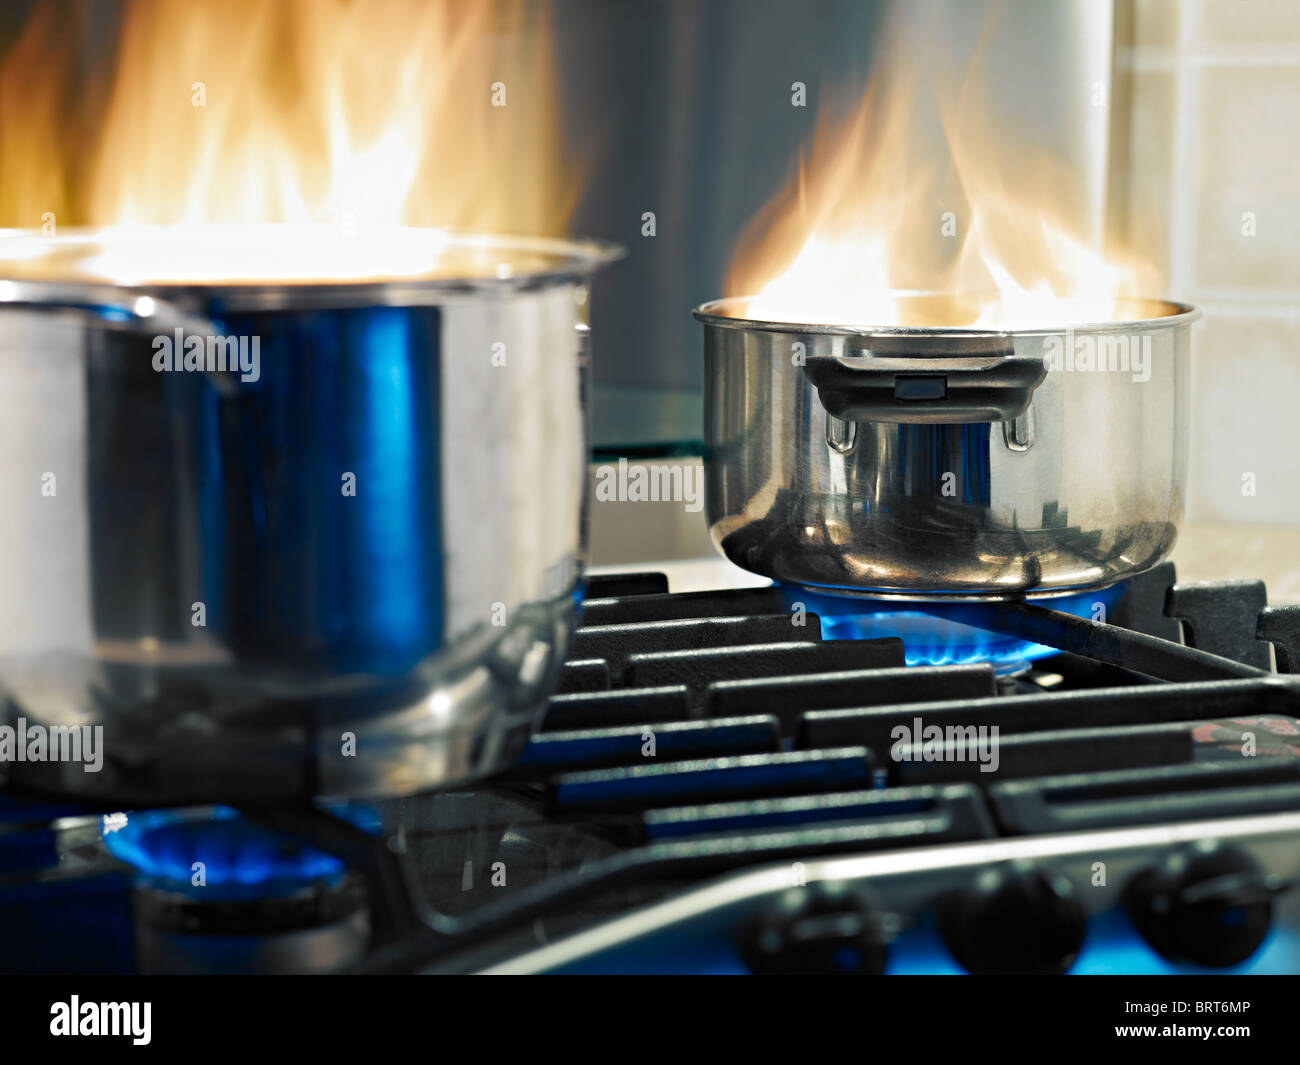 pans in fire on stoves. Horizontal shape - Stock Image